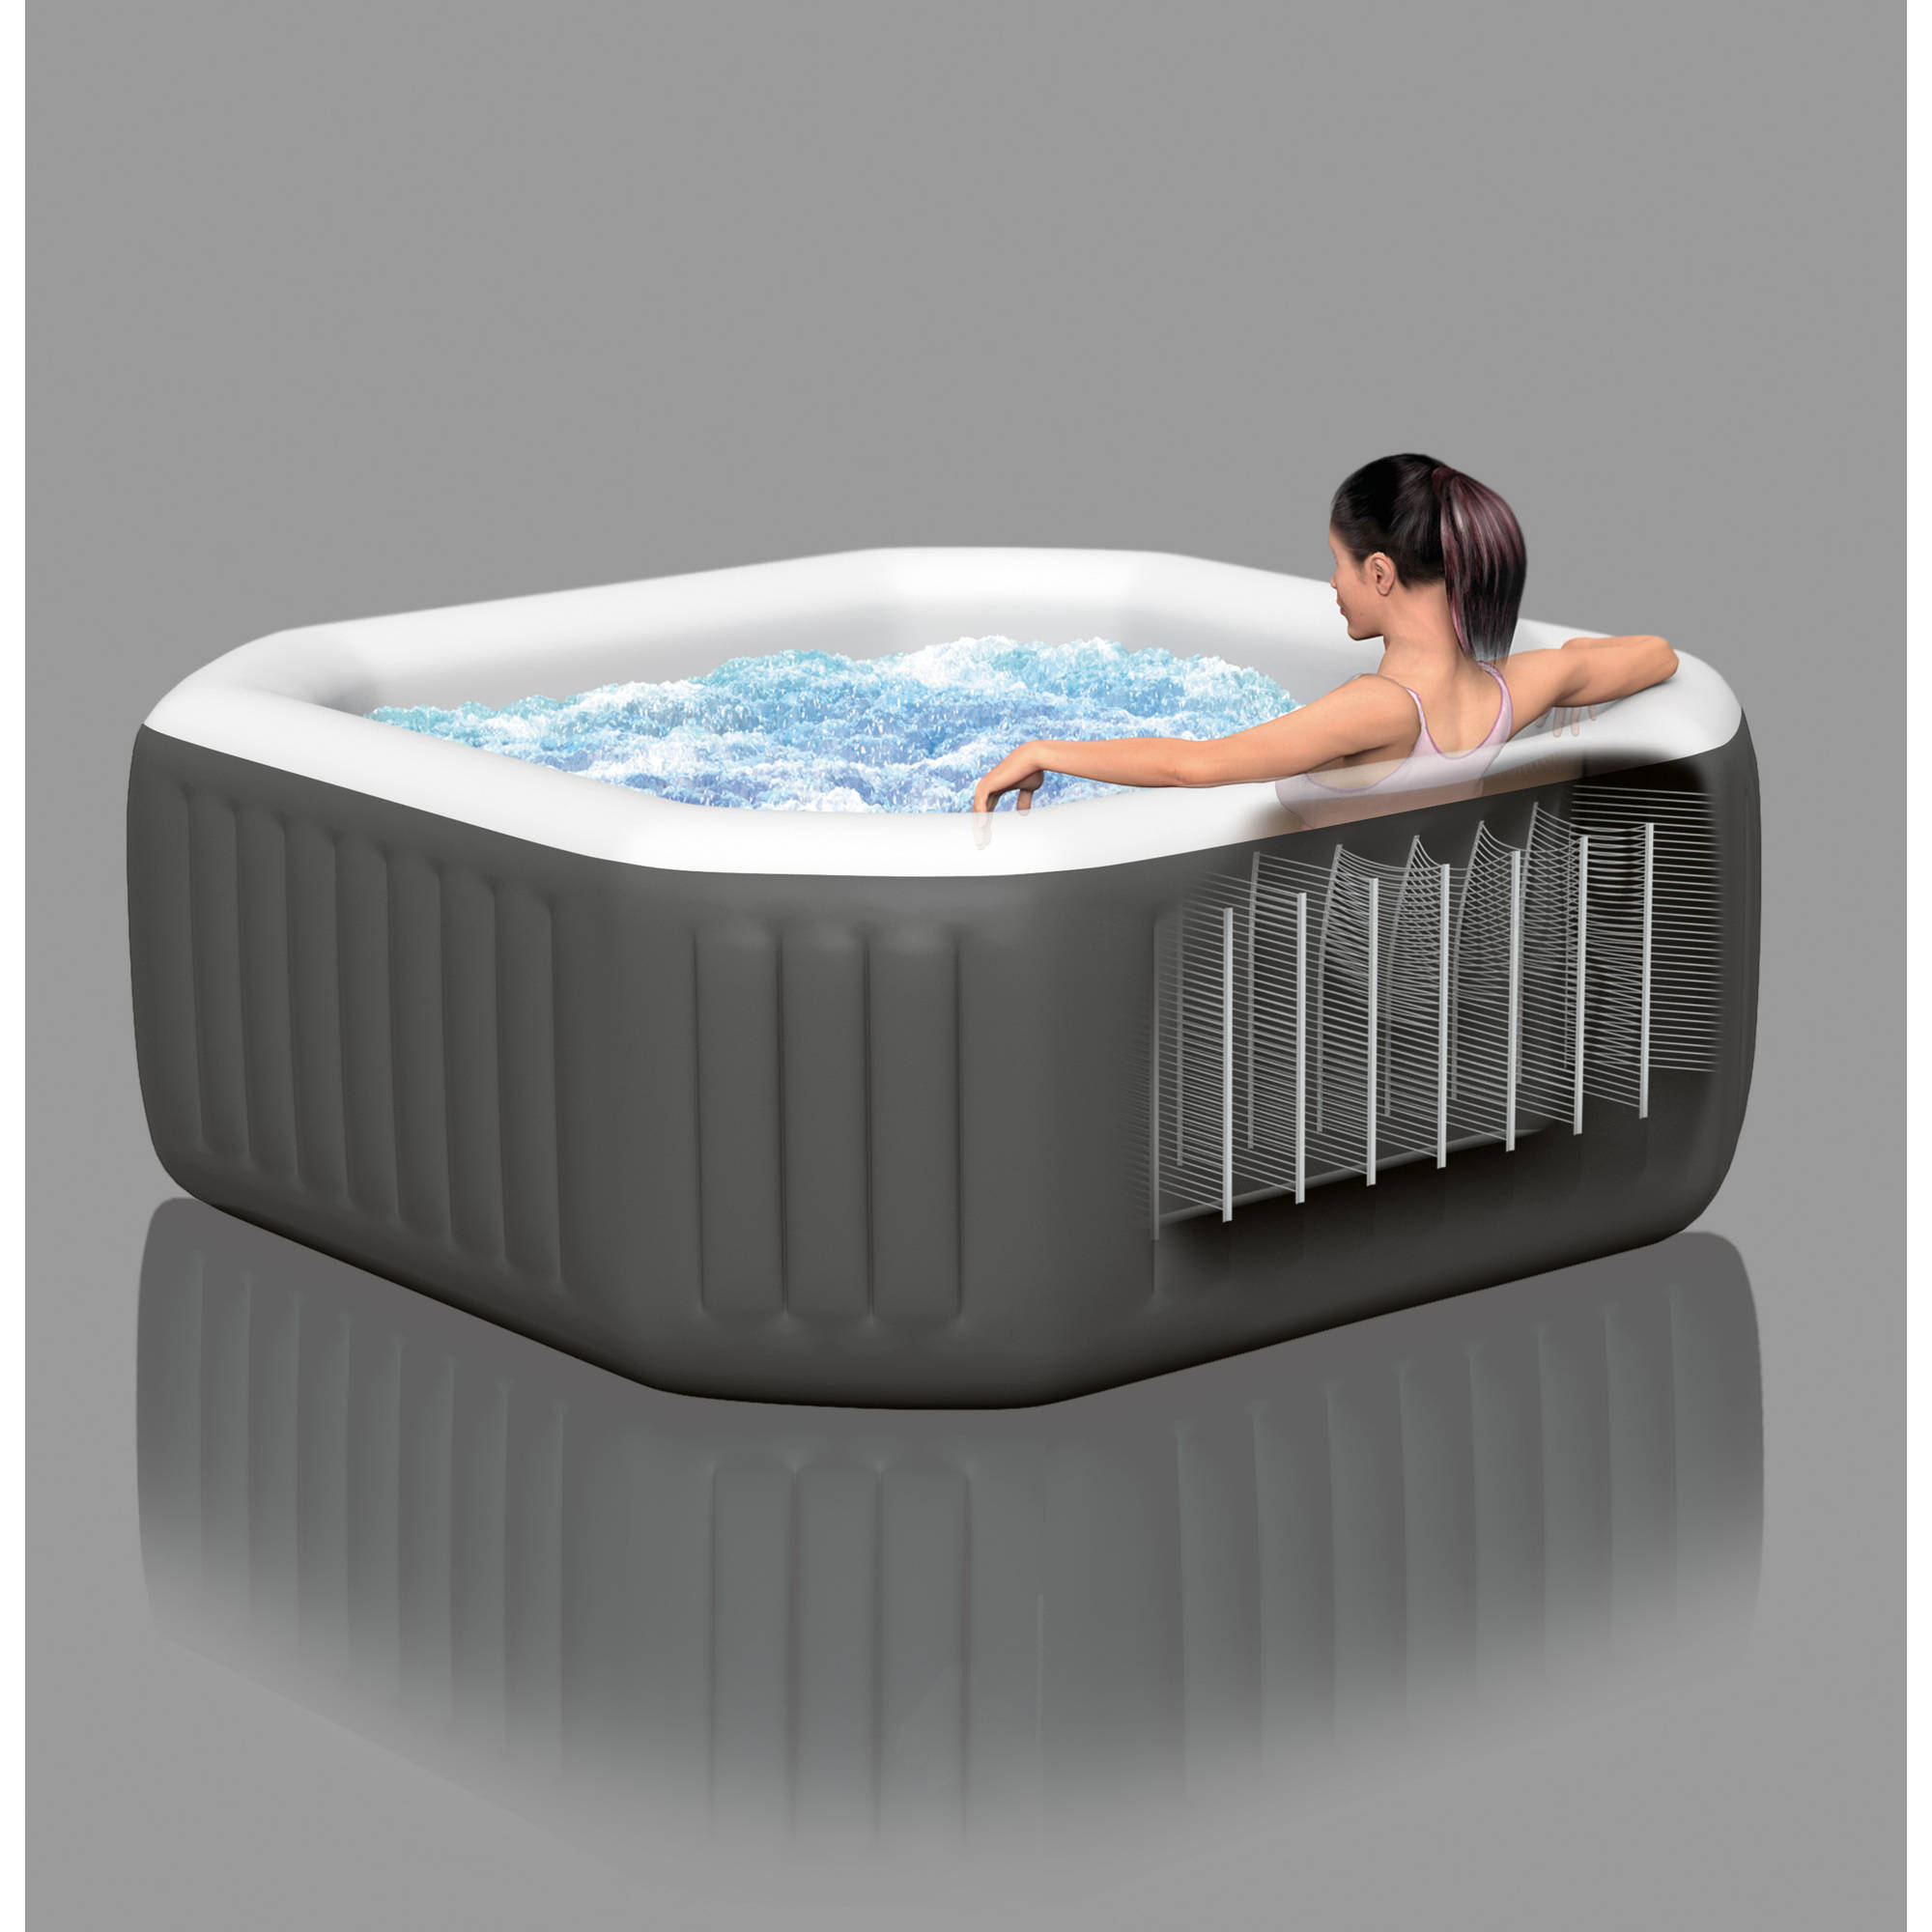 Jacuzzi Hot Tub Portable Bath Spa Heated Bubble Jets 4 Person Water ...